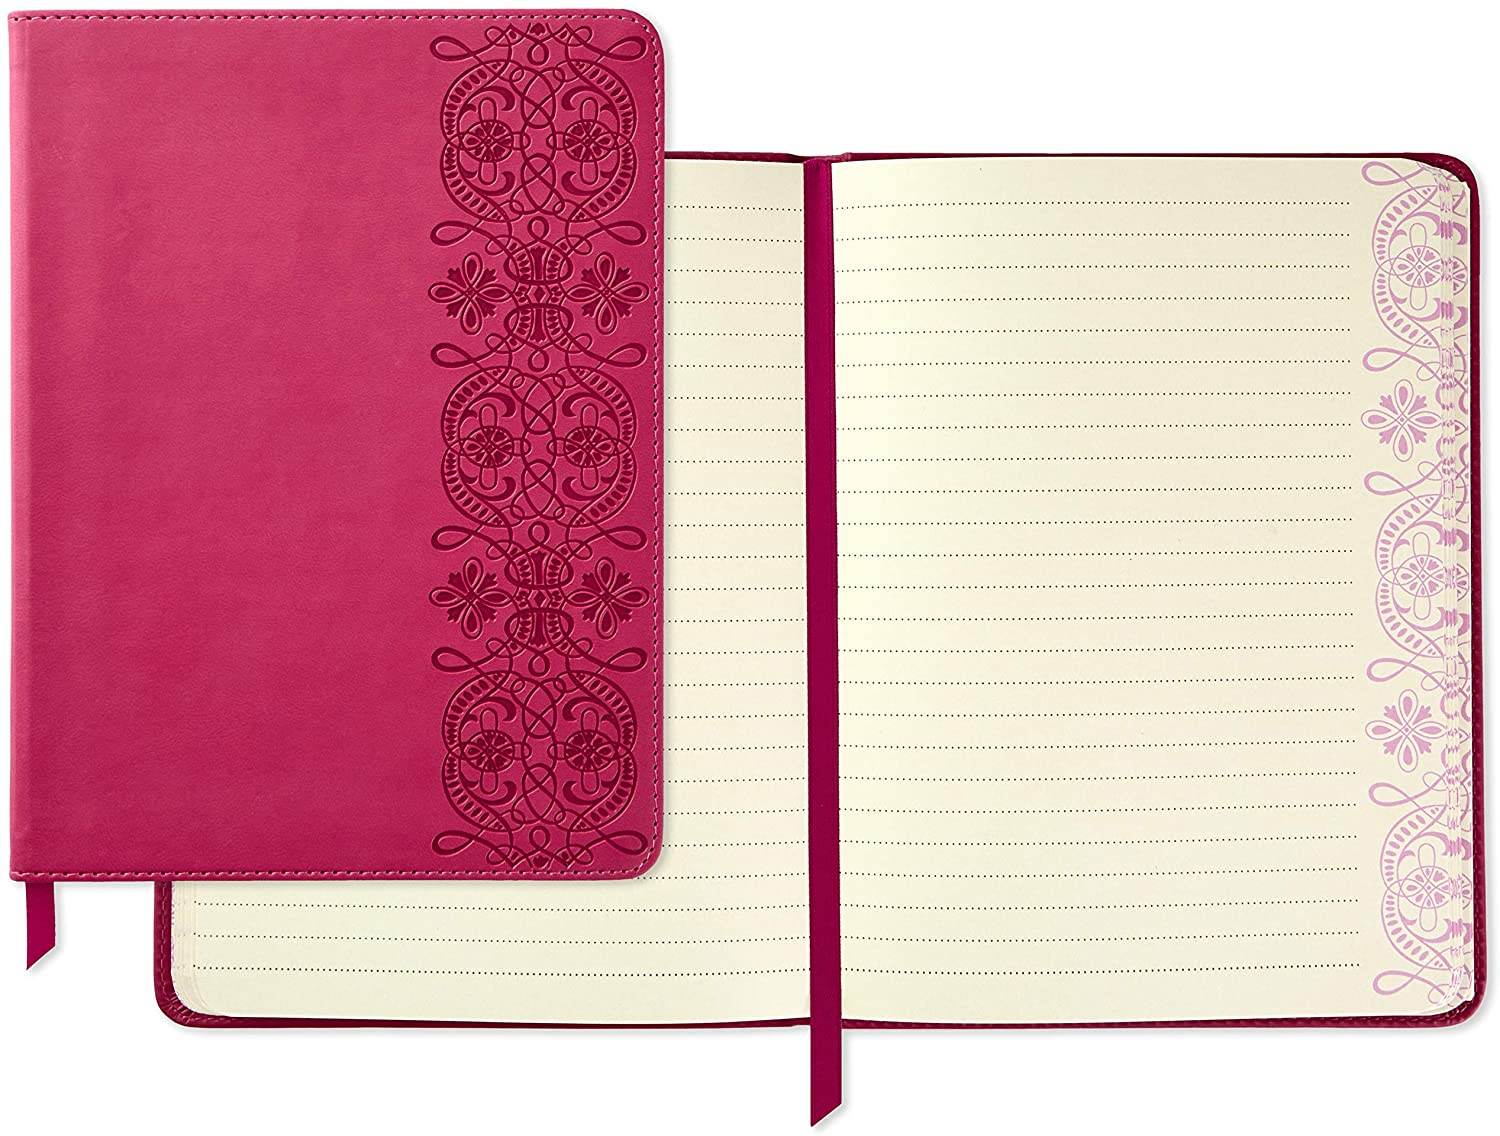 Hallmark Softcover Journal with Lined Pages (Pink Scrollwork)